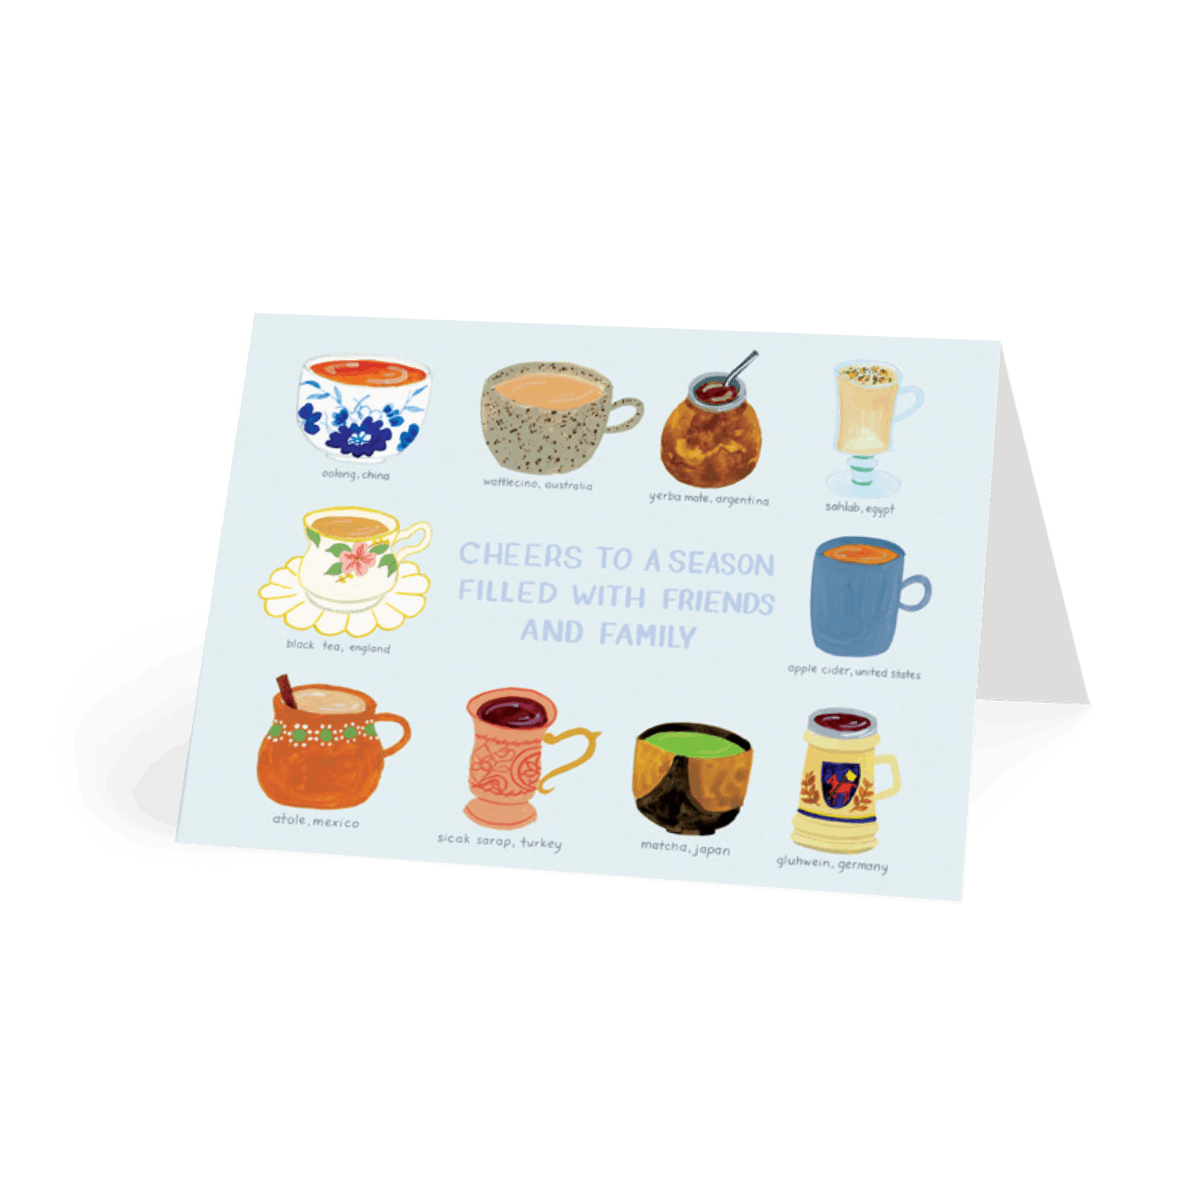 Https%3a%2f%2fwww.papier.com%2fproduct image%2f27538%2f14%2fhot drinks of the world 6867 avant 1570703338.png?ixlib=rb 1.1